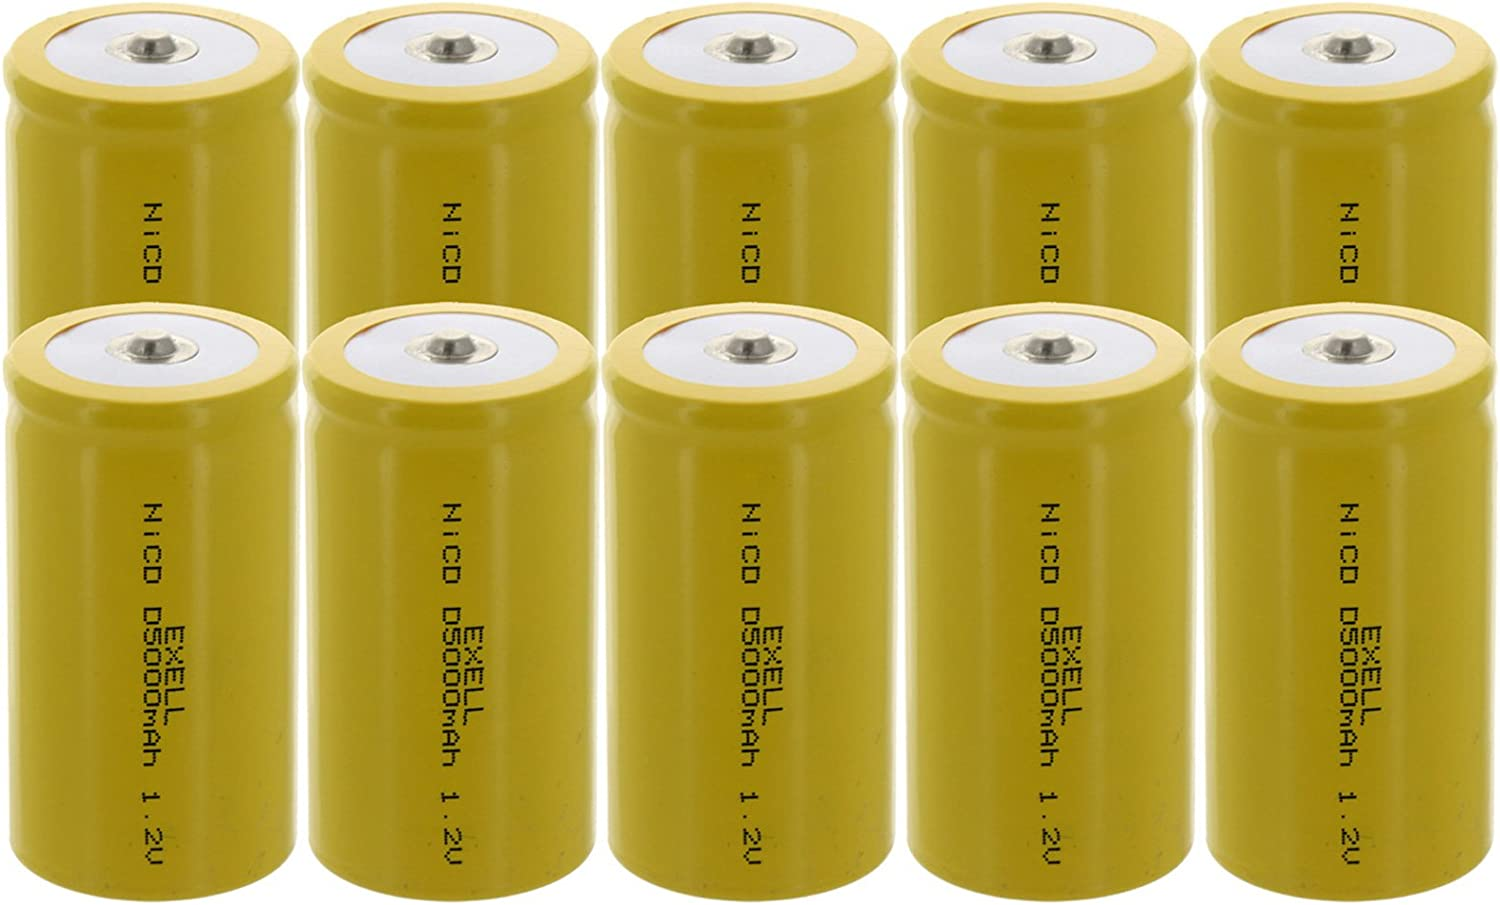 10x D Size 1.2V 5000mAh NiCD Button Top Rechargeable Batteries for electric mopeds, meters, radios